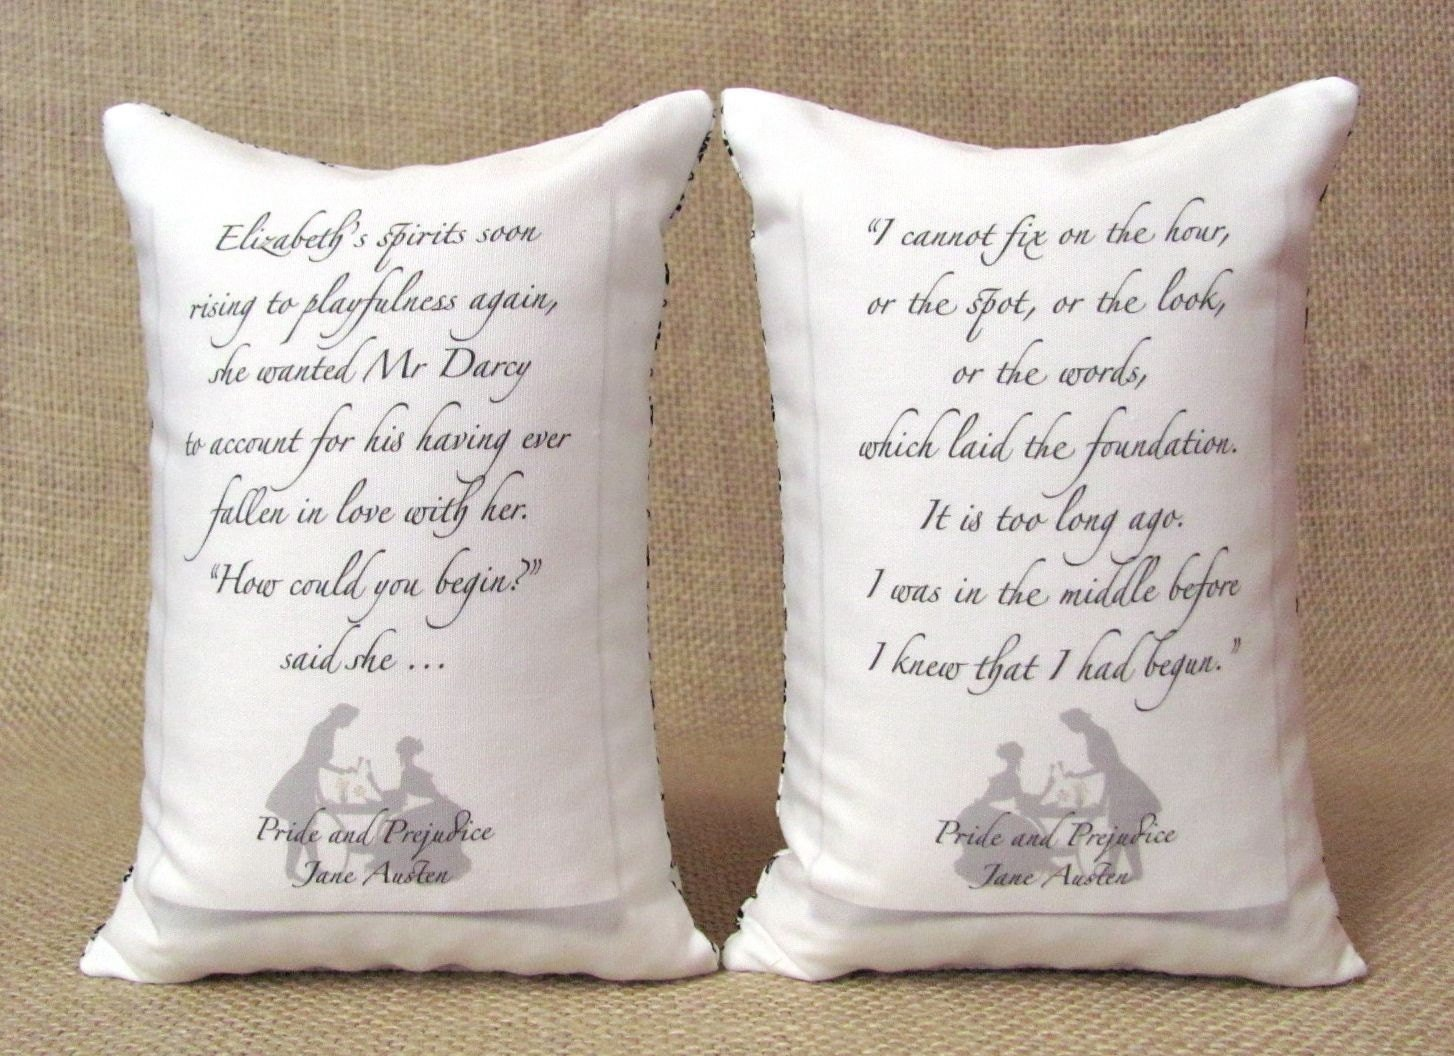 Pride and Prejudice - Elizabeth and Darcy In Love Bookends - Shelf Pillows